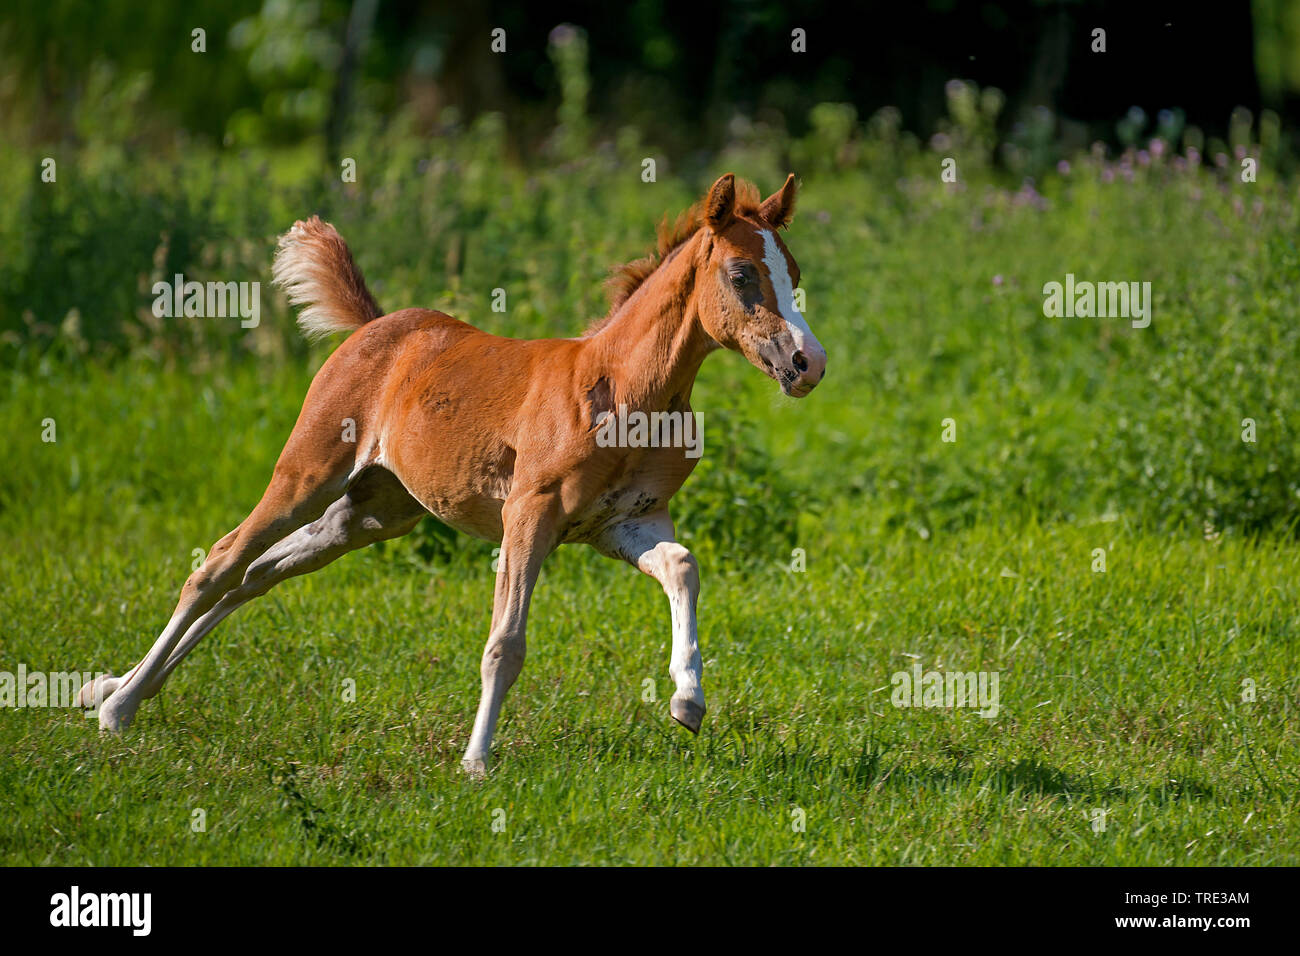 Welsh and cob pony (Equus przewalskii f. caballus), foal running in a meadow, side view, Germany, North Rhine-Westphalia Stock Photo